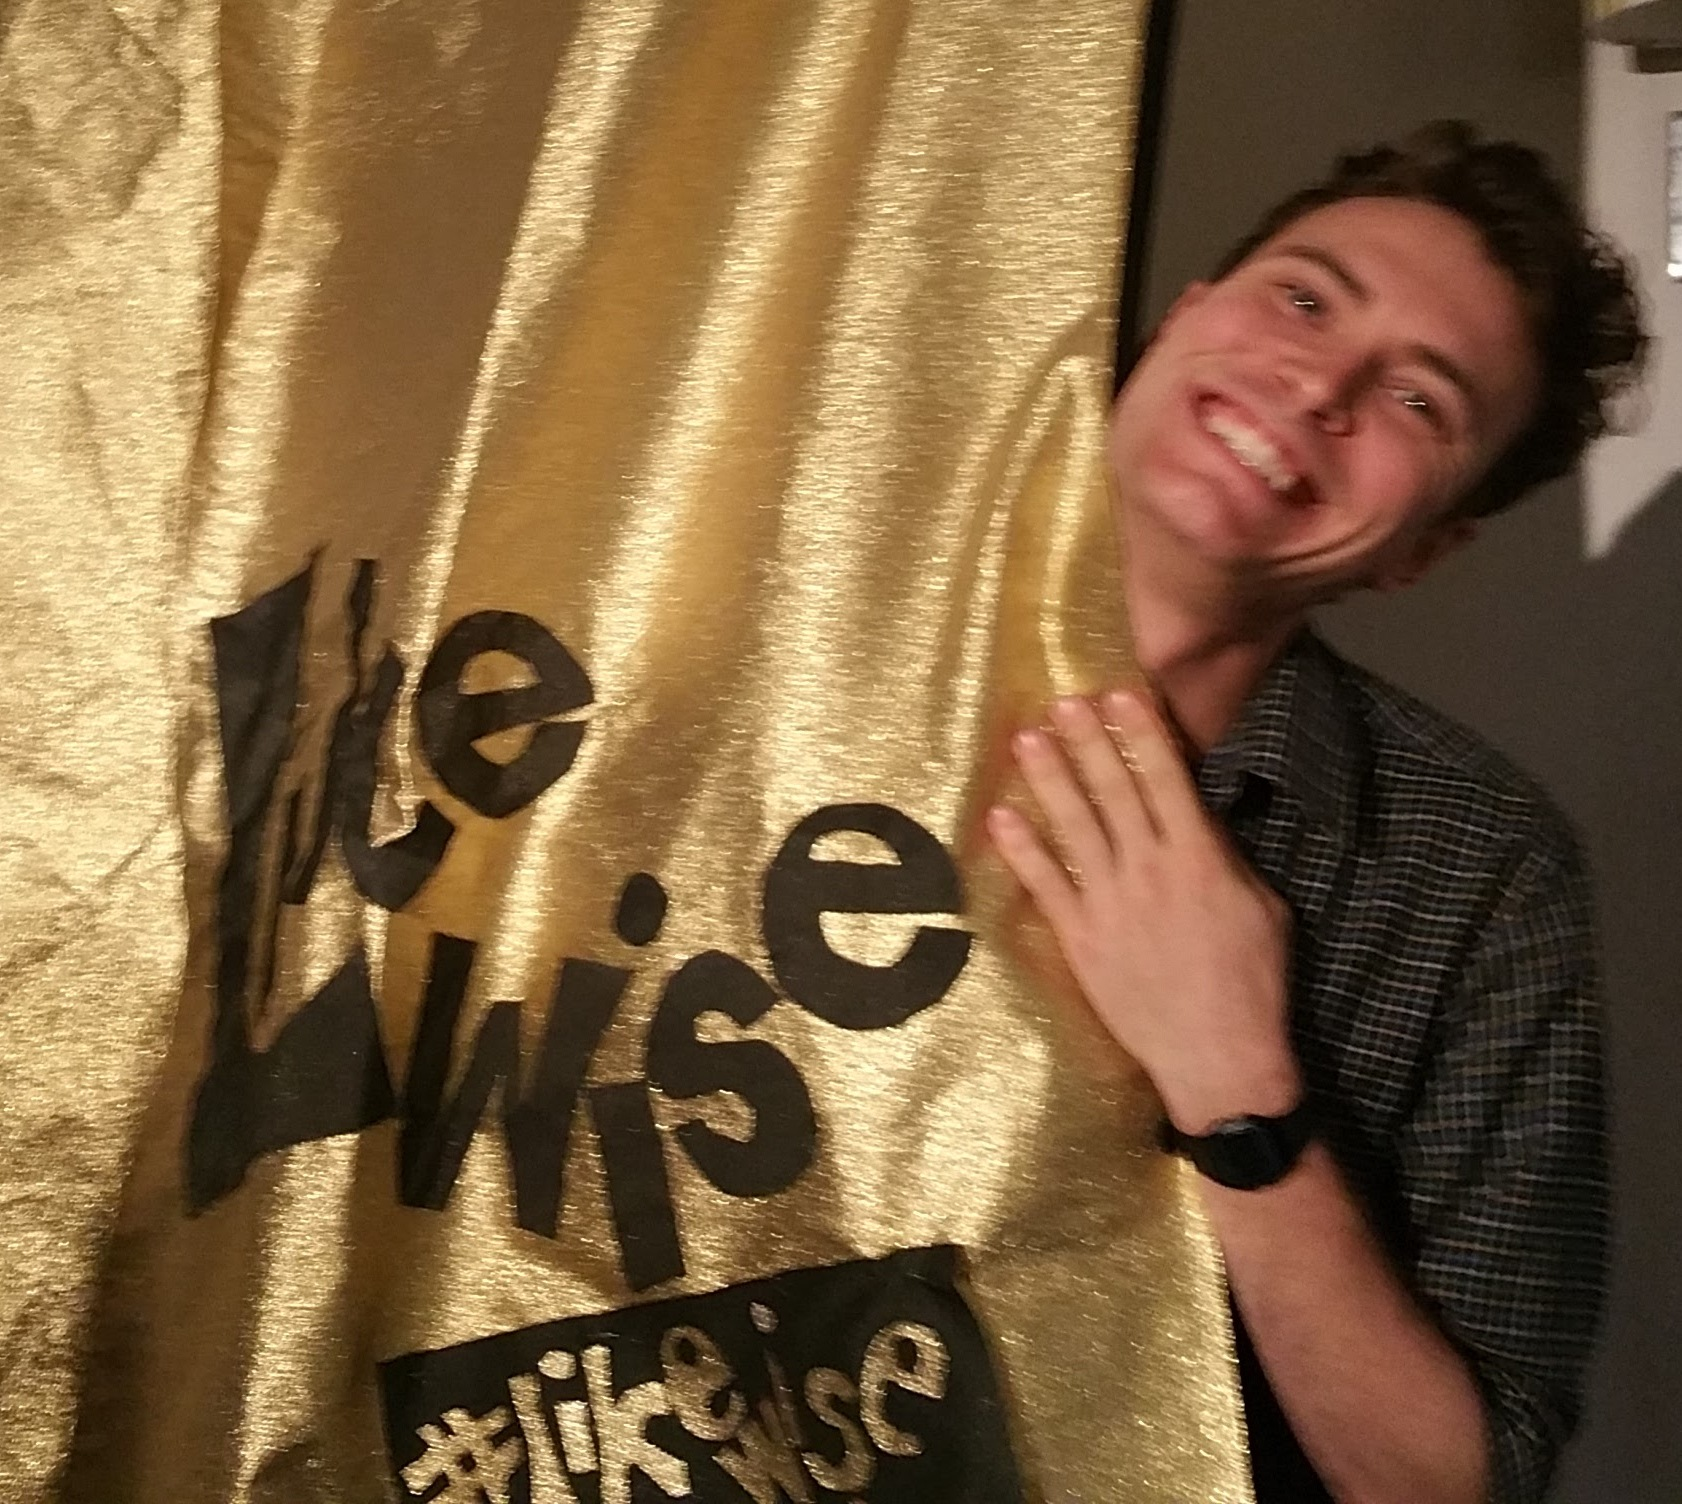 Likewise is back! Come to the Dinner Party